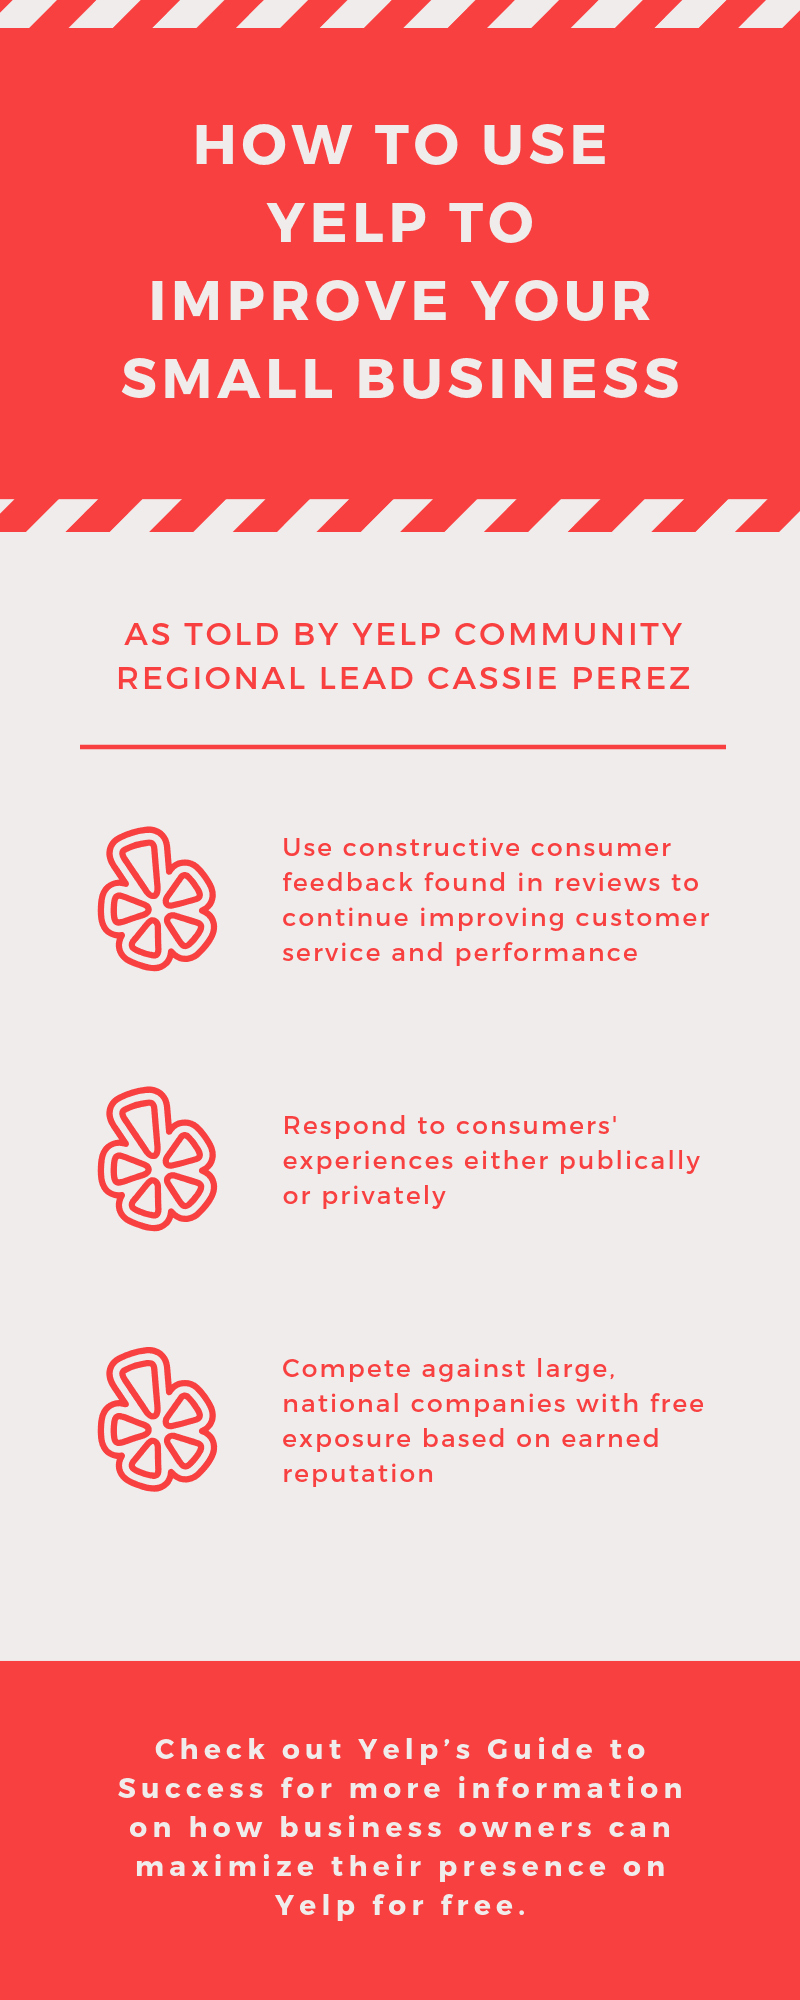 How to Use Yelp to Improve Your Small Business